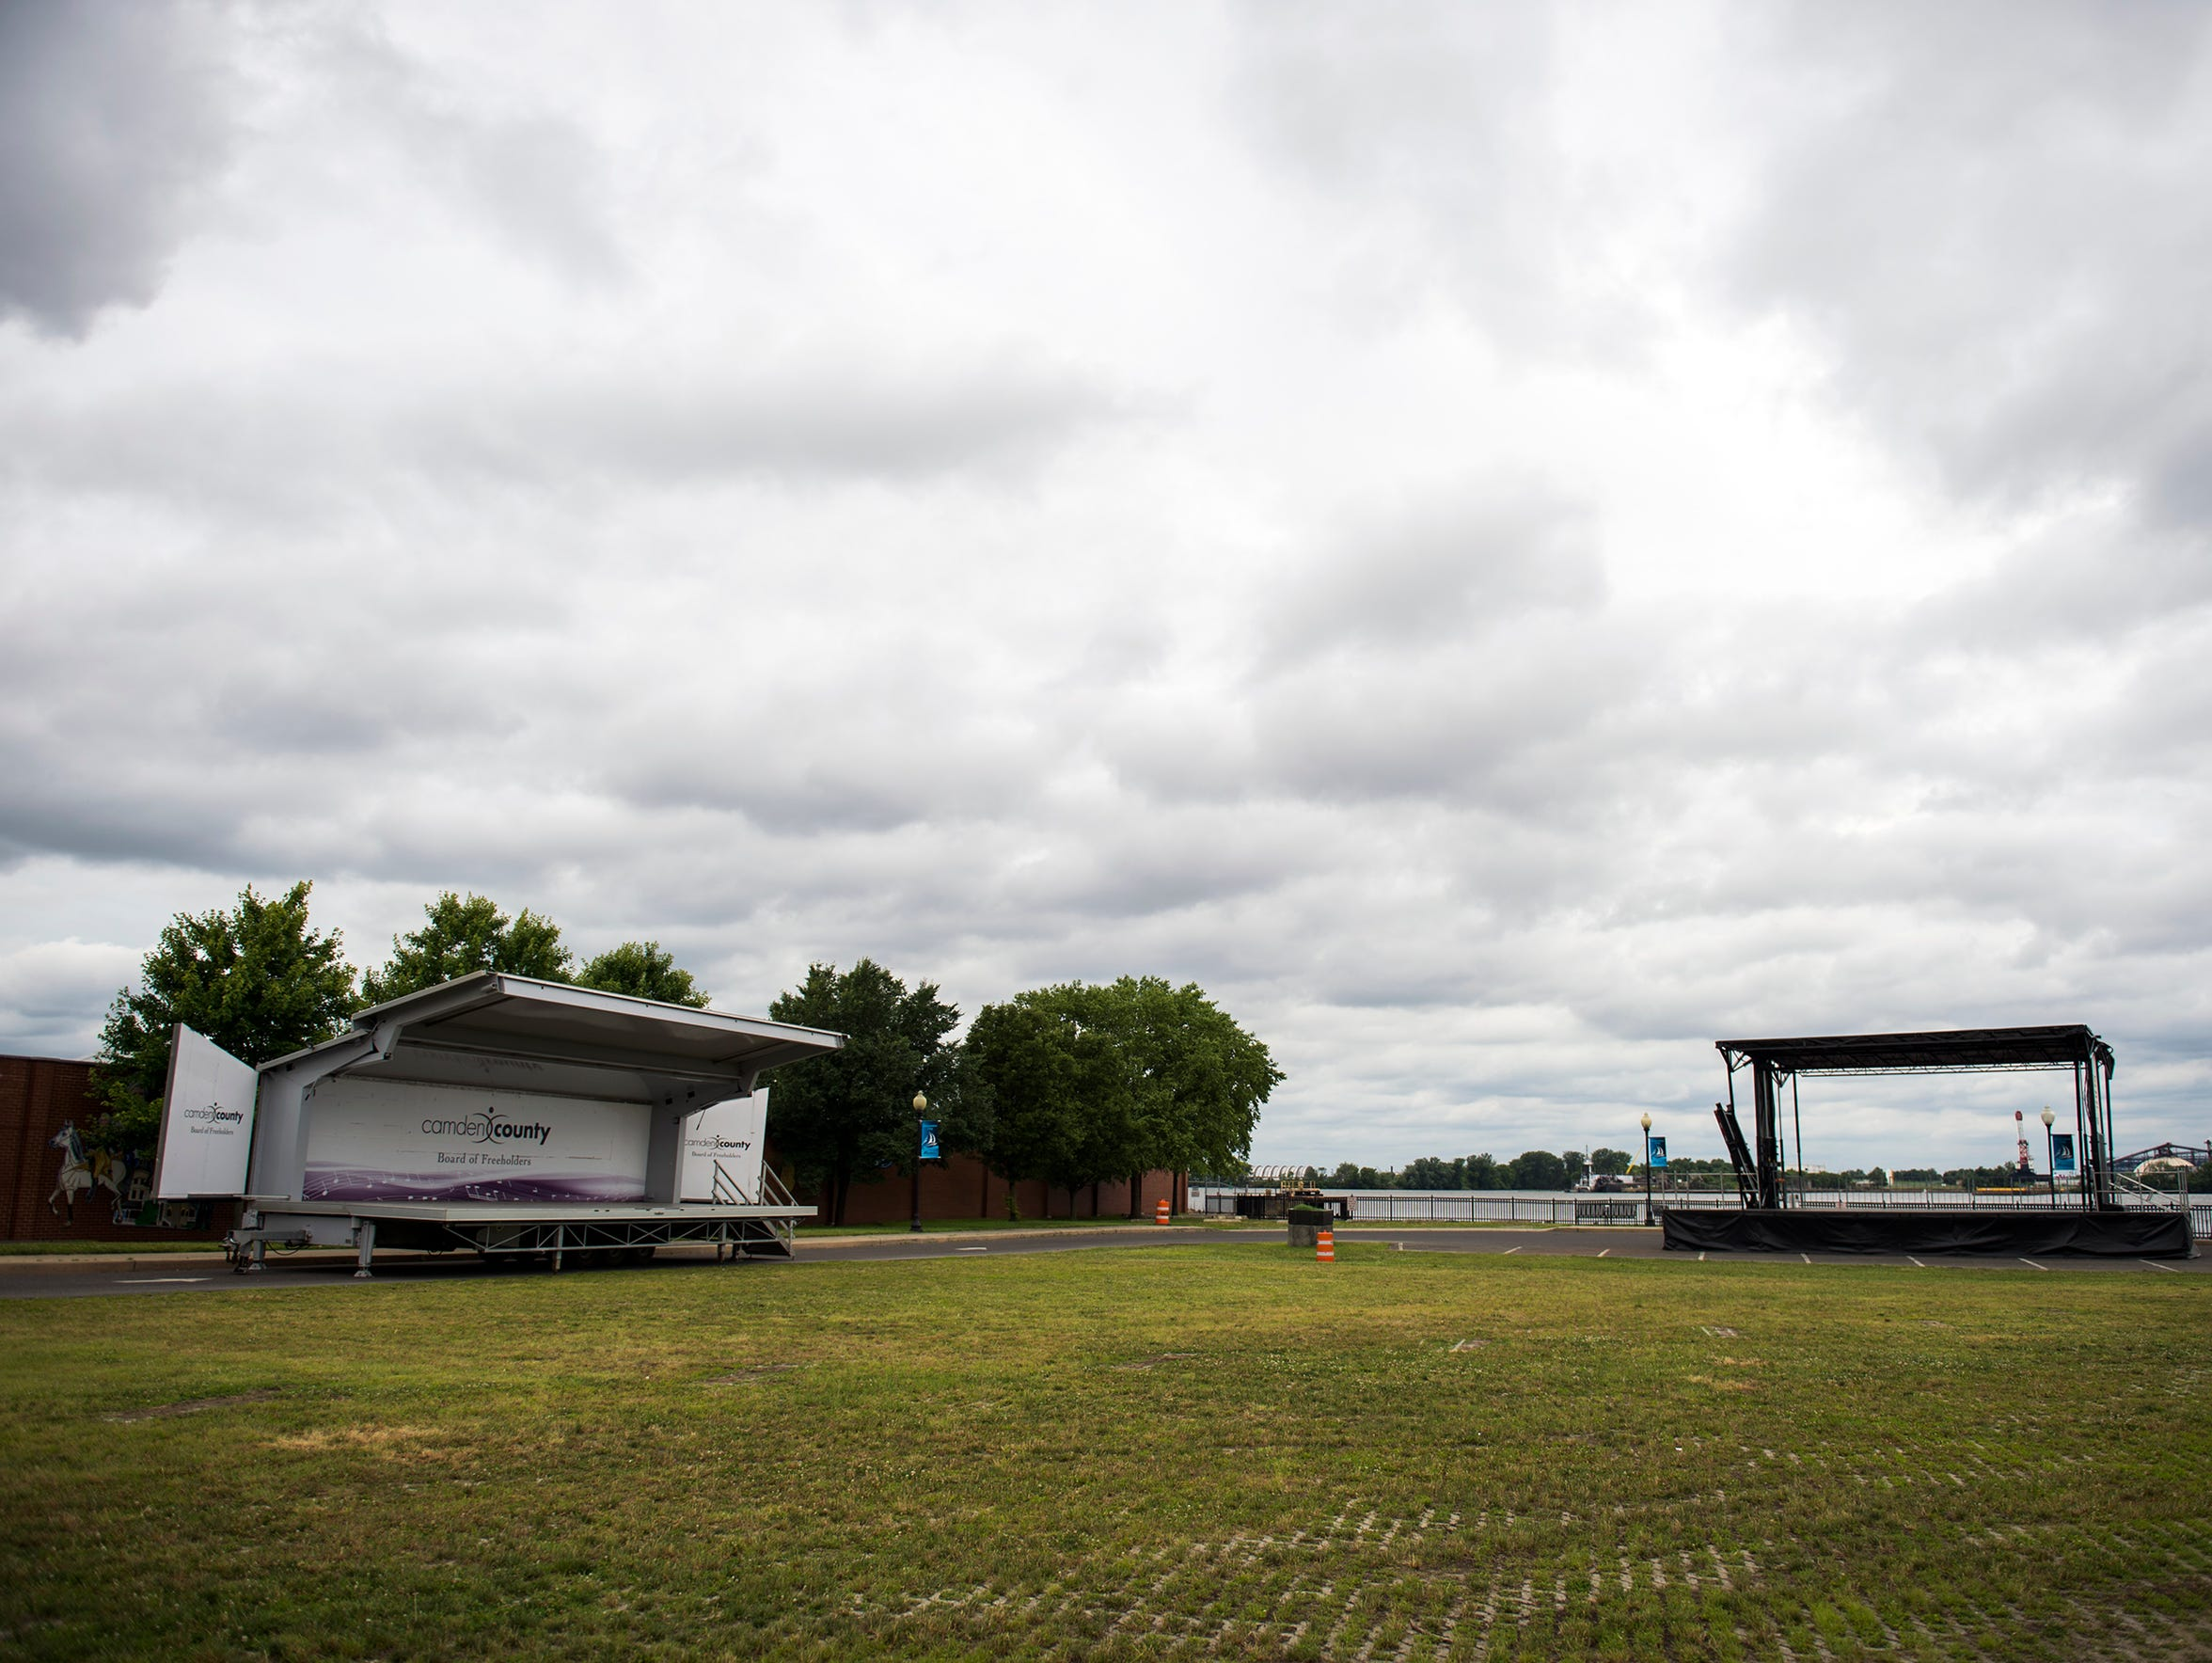 Stages are set at Proprietors Park ahead of 'Not Your